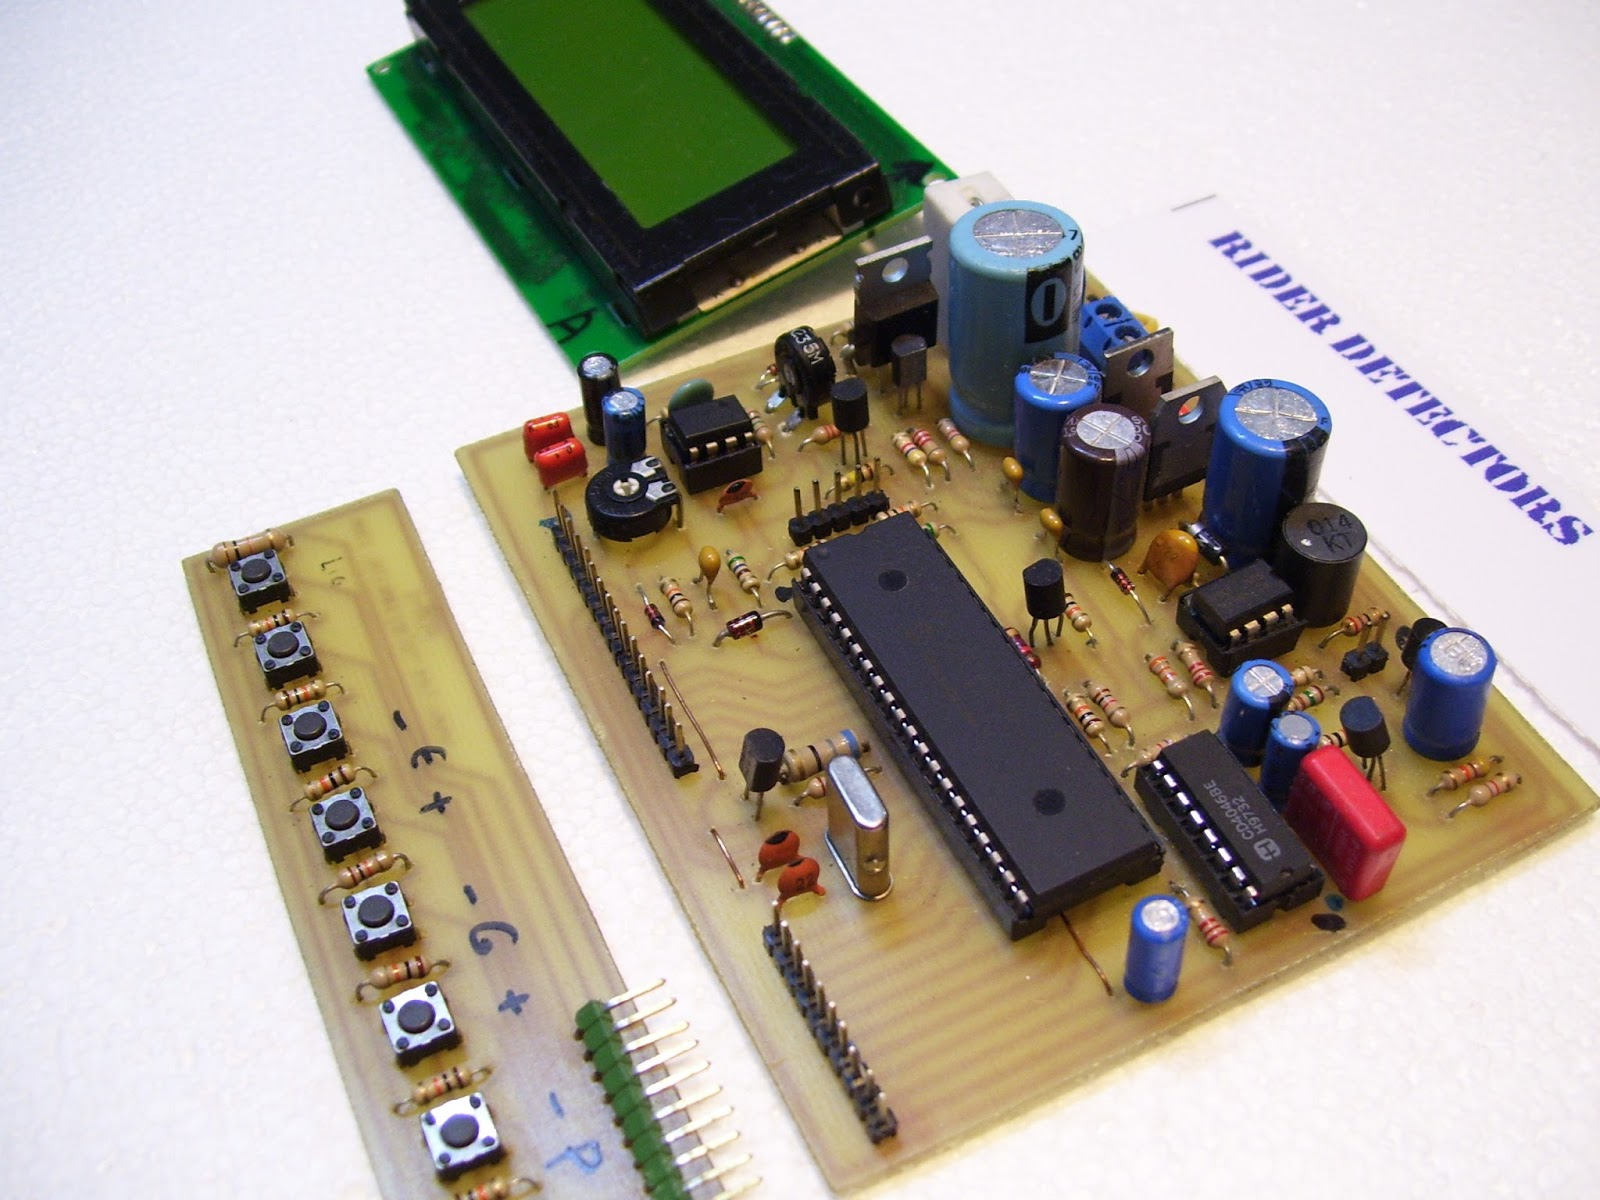 Iphone 5 Circuit Diagram Guide And Troubleshooting Of Wiring Pi Metal Detector Schematic Pcb Coil